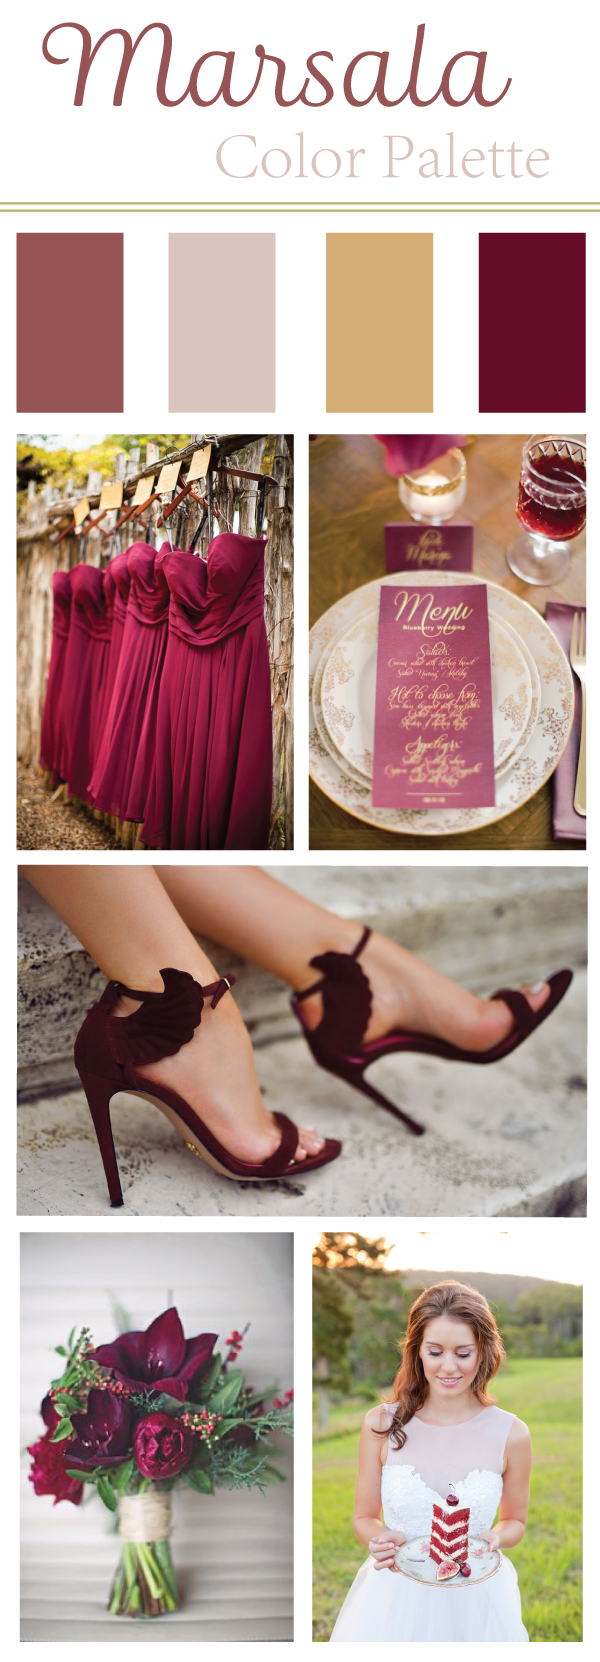 A Marsala Color Palette to highlight Pantone's beautiful color of the year to inspire help spring and fall brides with warm, inviting wedding colors.